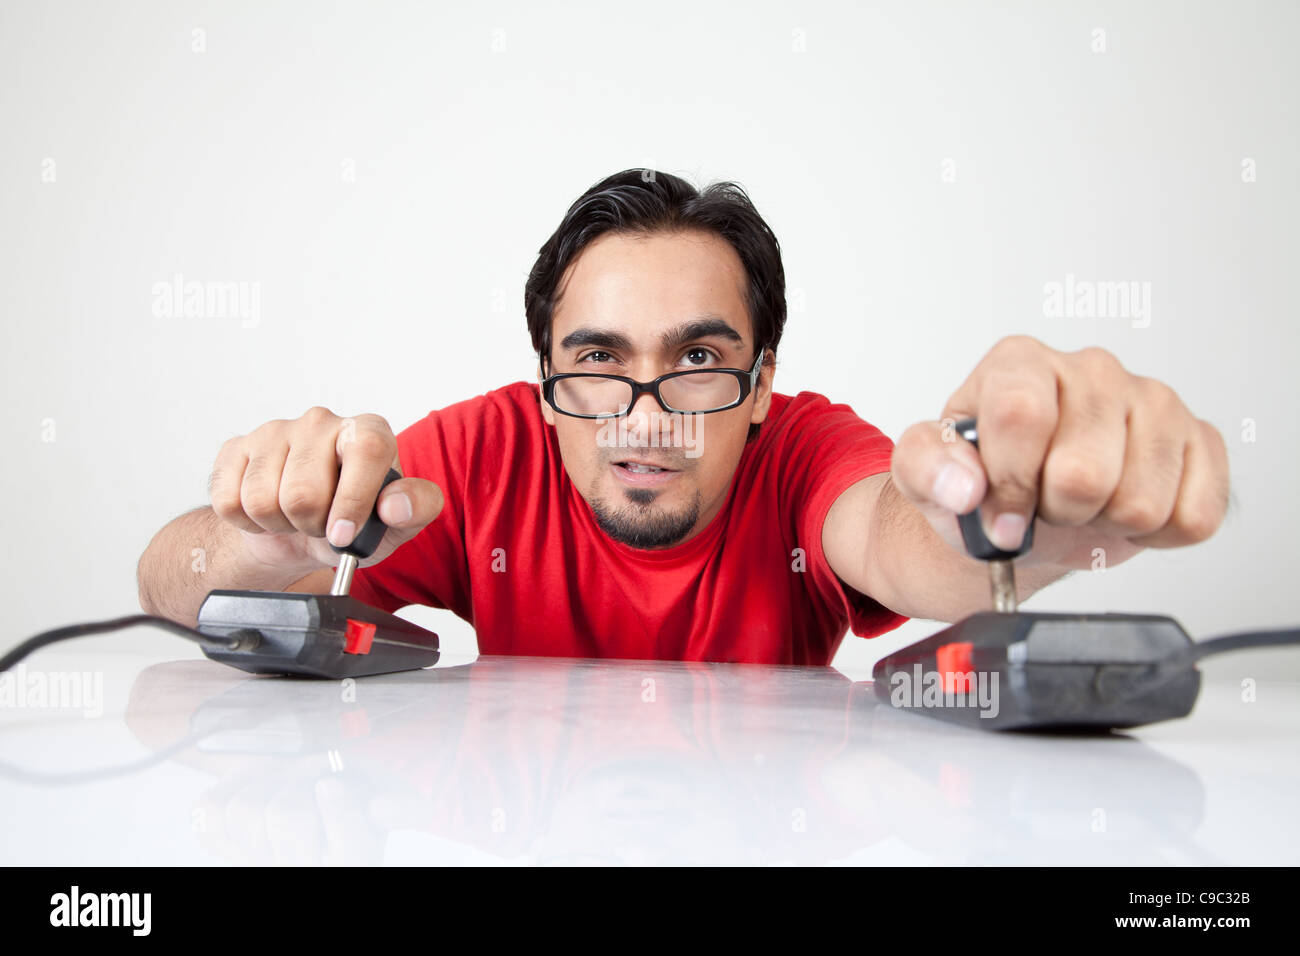 Game nerd playing with two joysticks - Stock Image